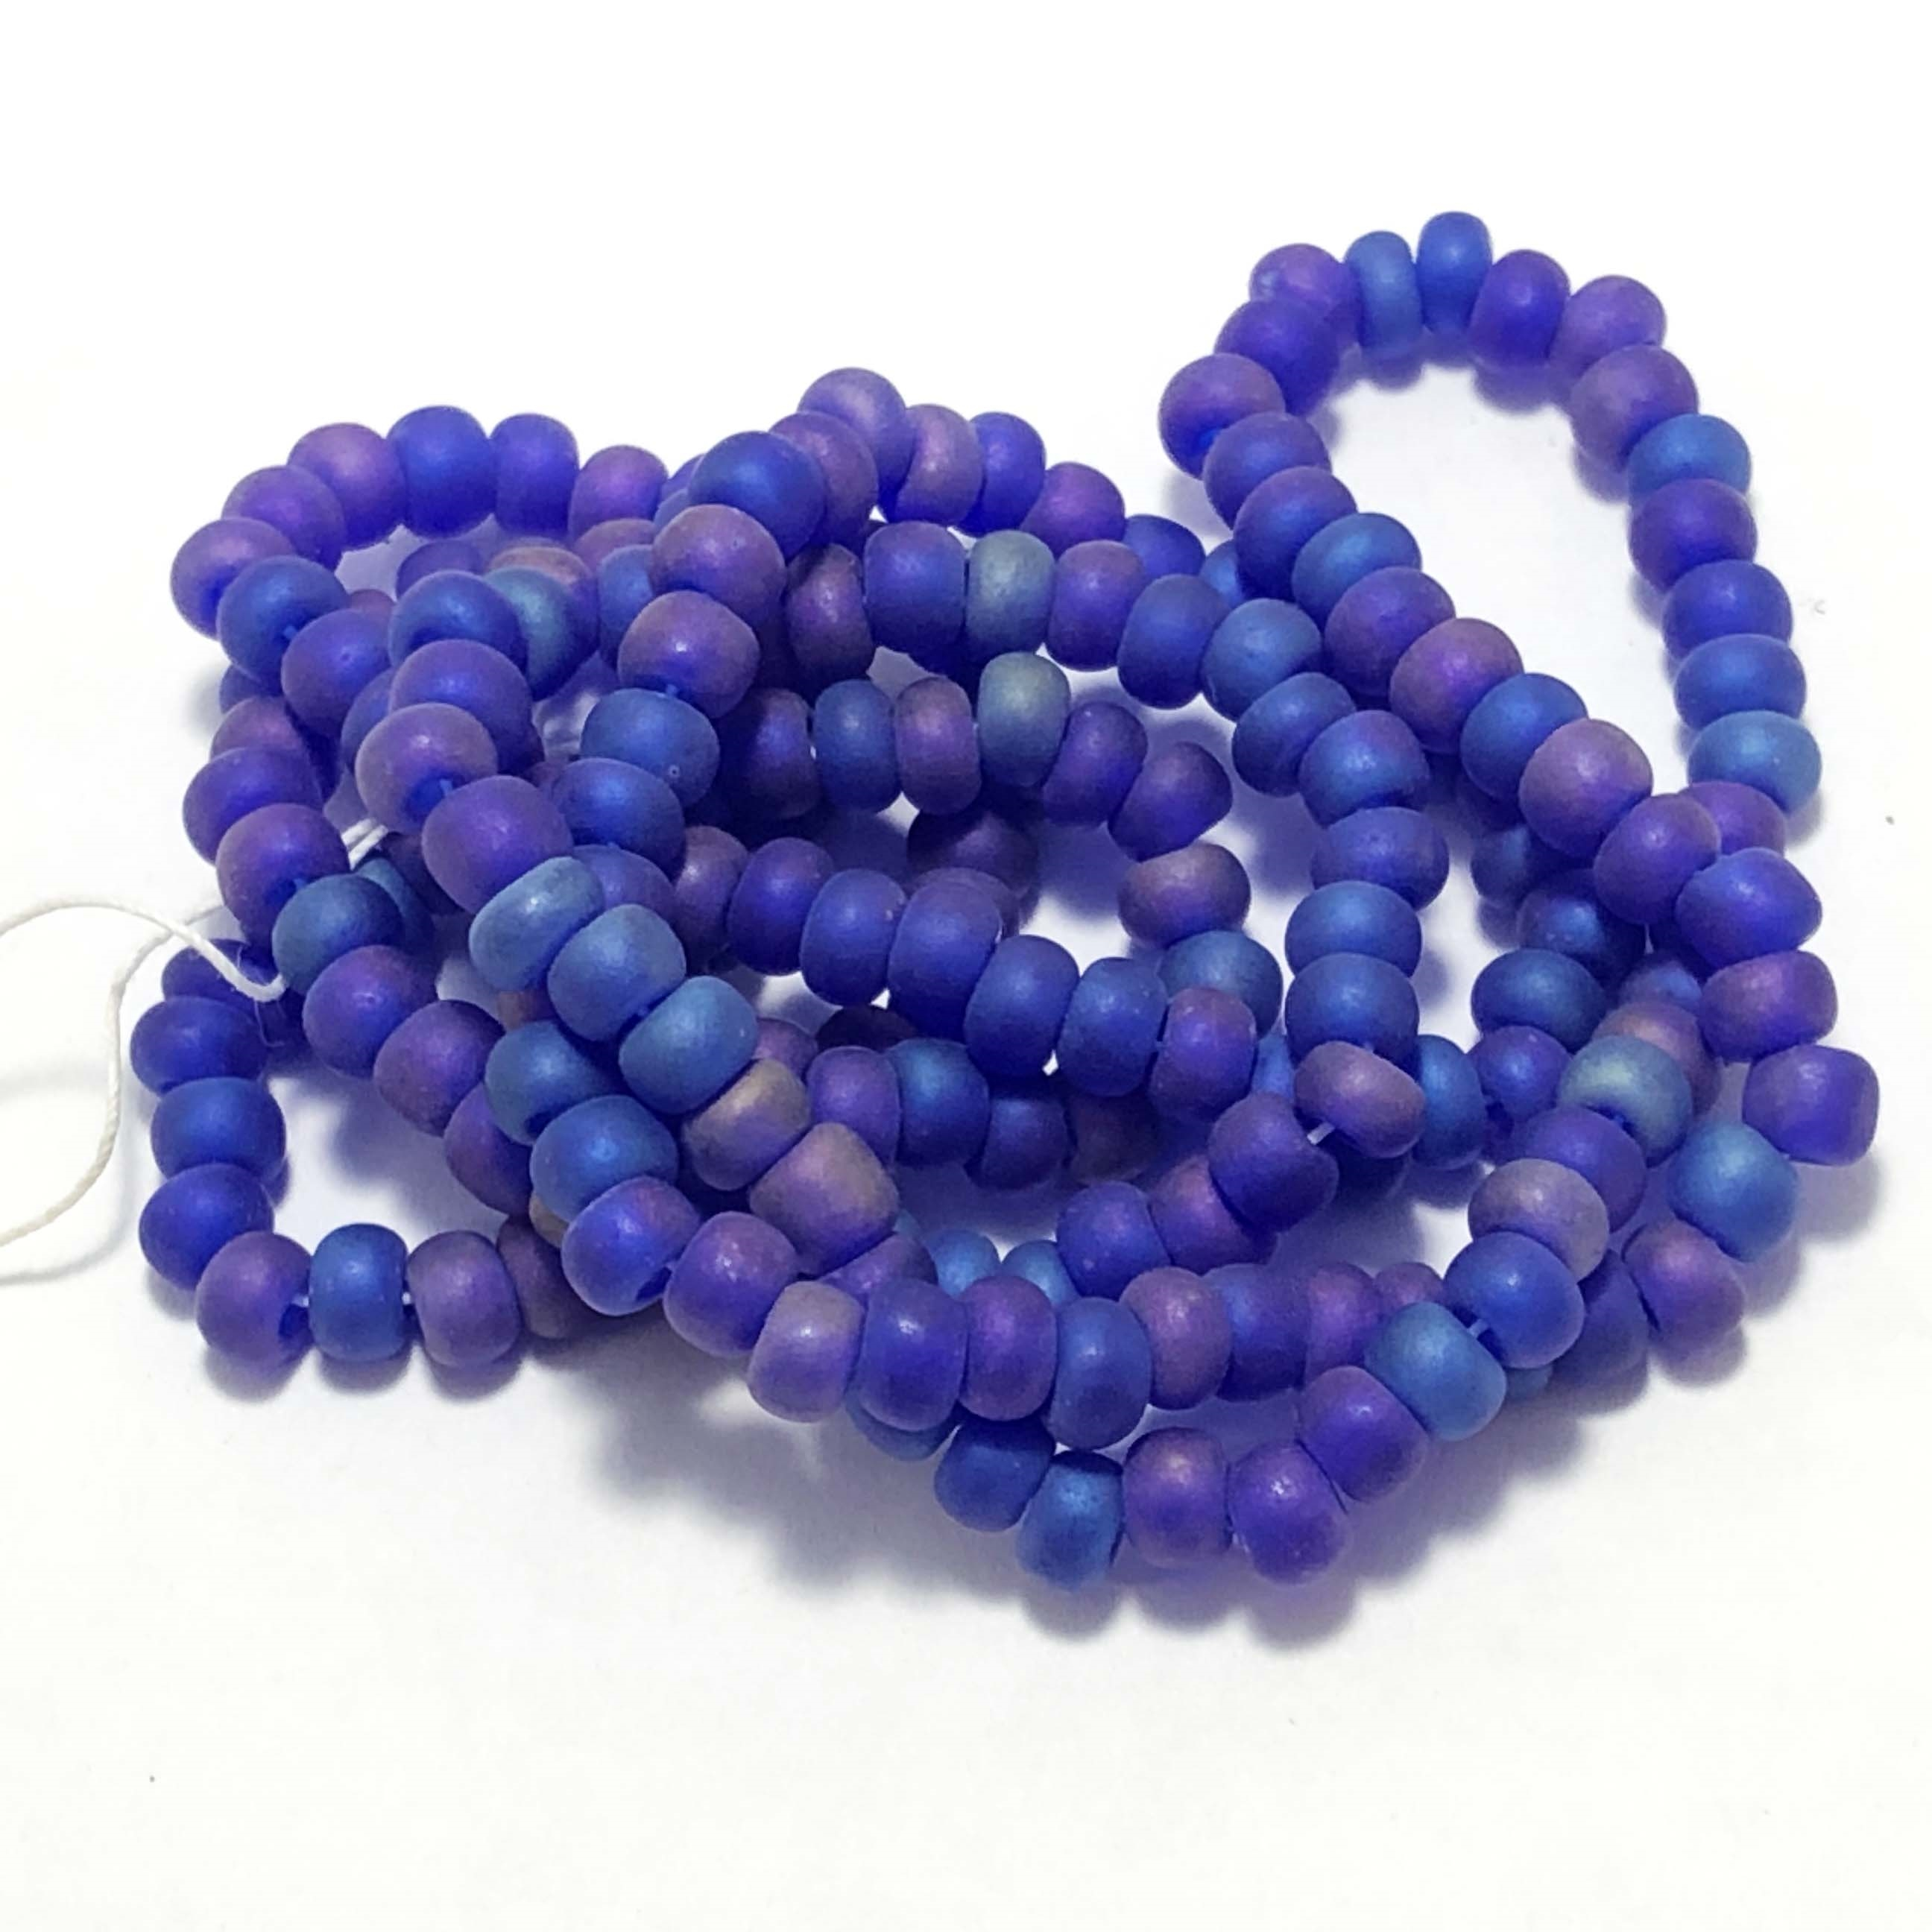 Spacer Beads, Beading Supplies, Purple Blue, 05341, acrylic beads, vintage jewelry supplies, jewelry making supplies, 4mm beads, bsue boutiques